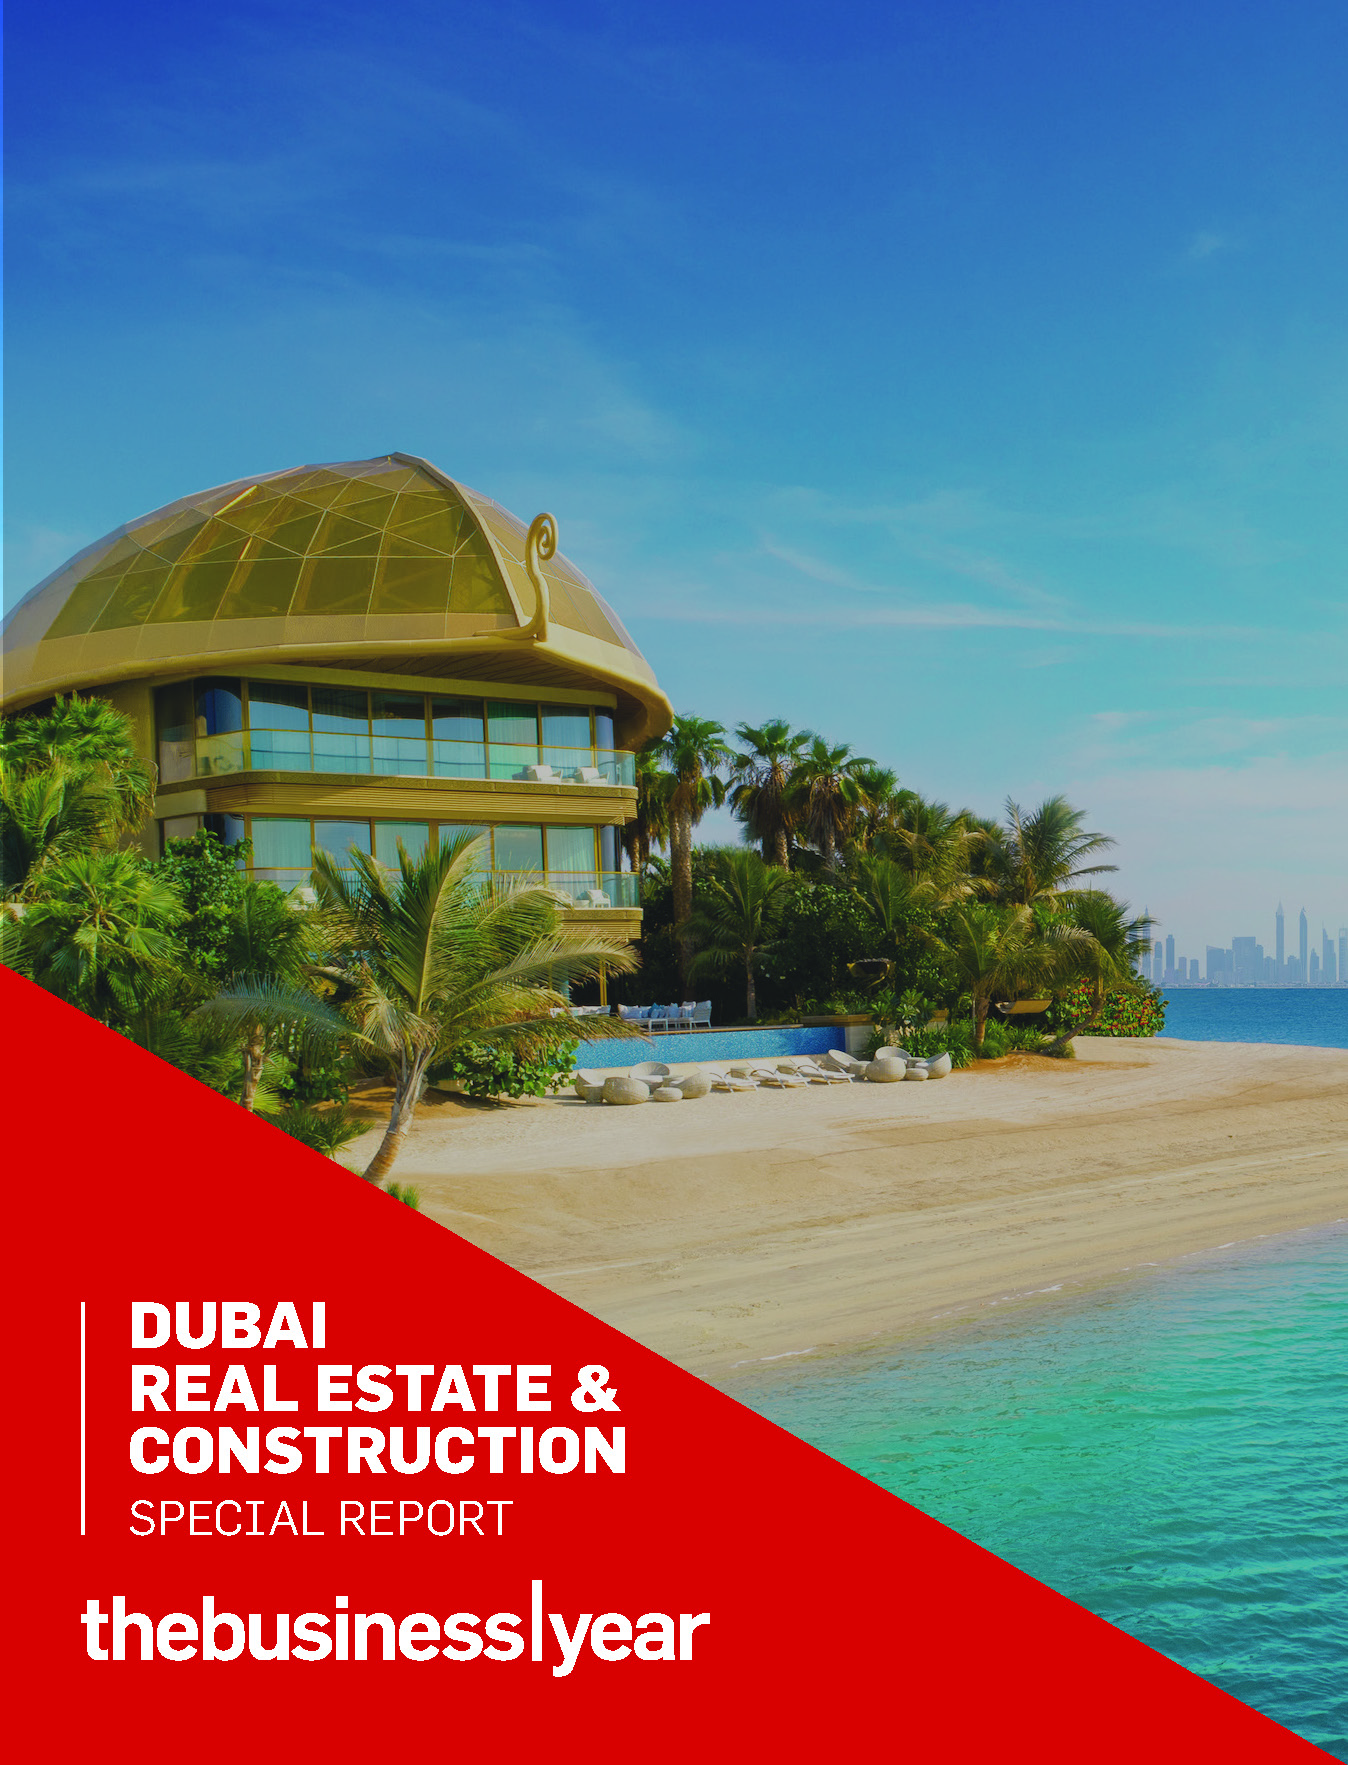 Dubai Real Estate & Construction